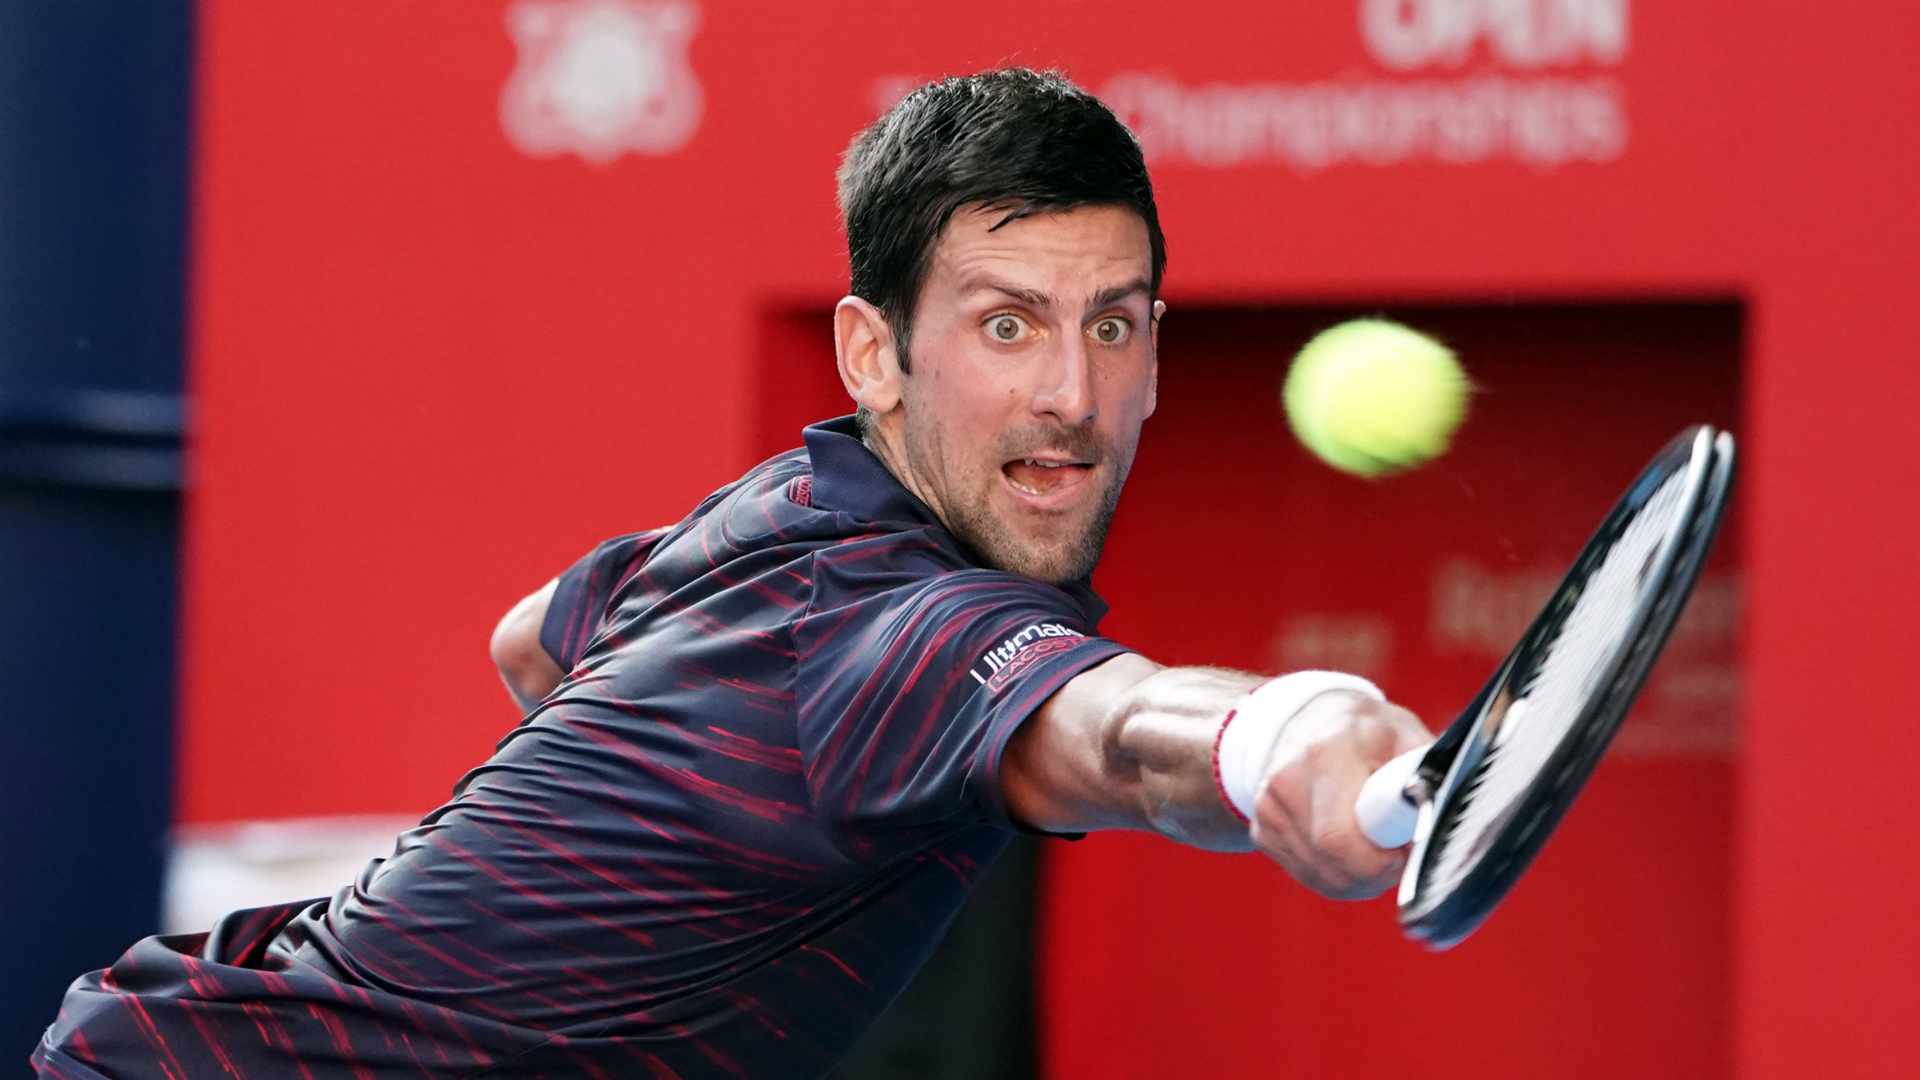 Djokovic targets Olympic glory after Tokyo triumph